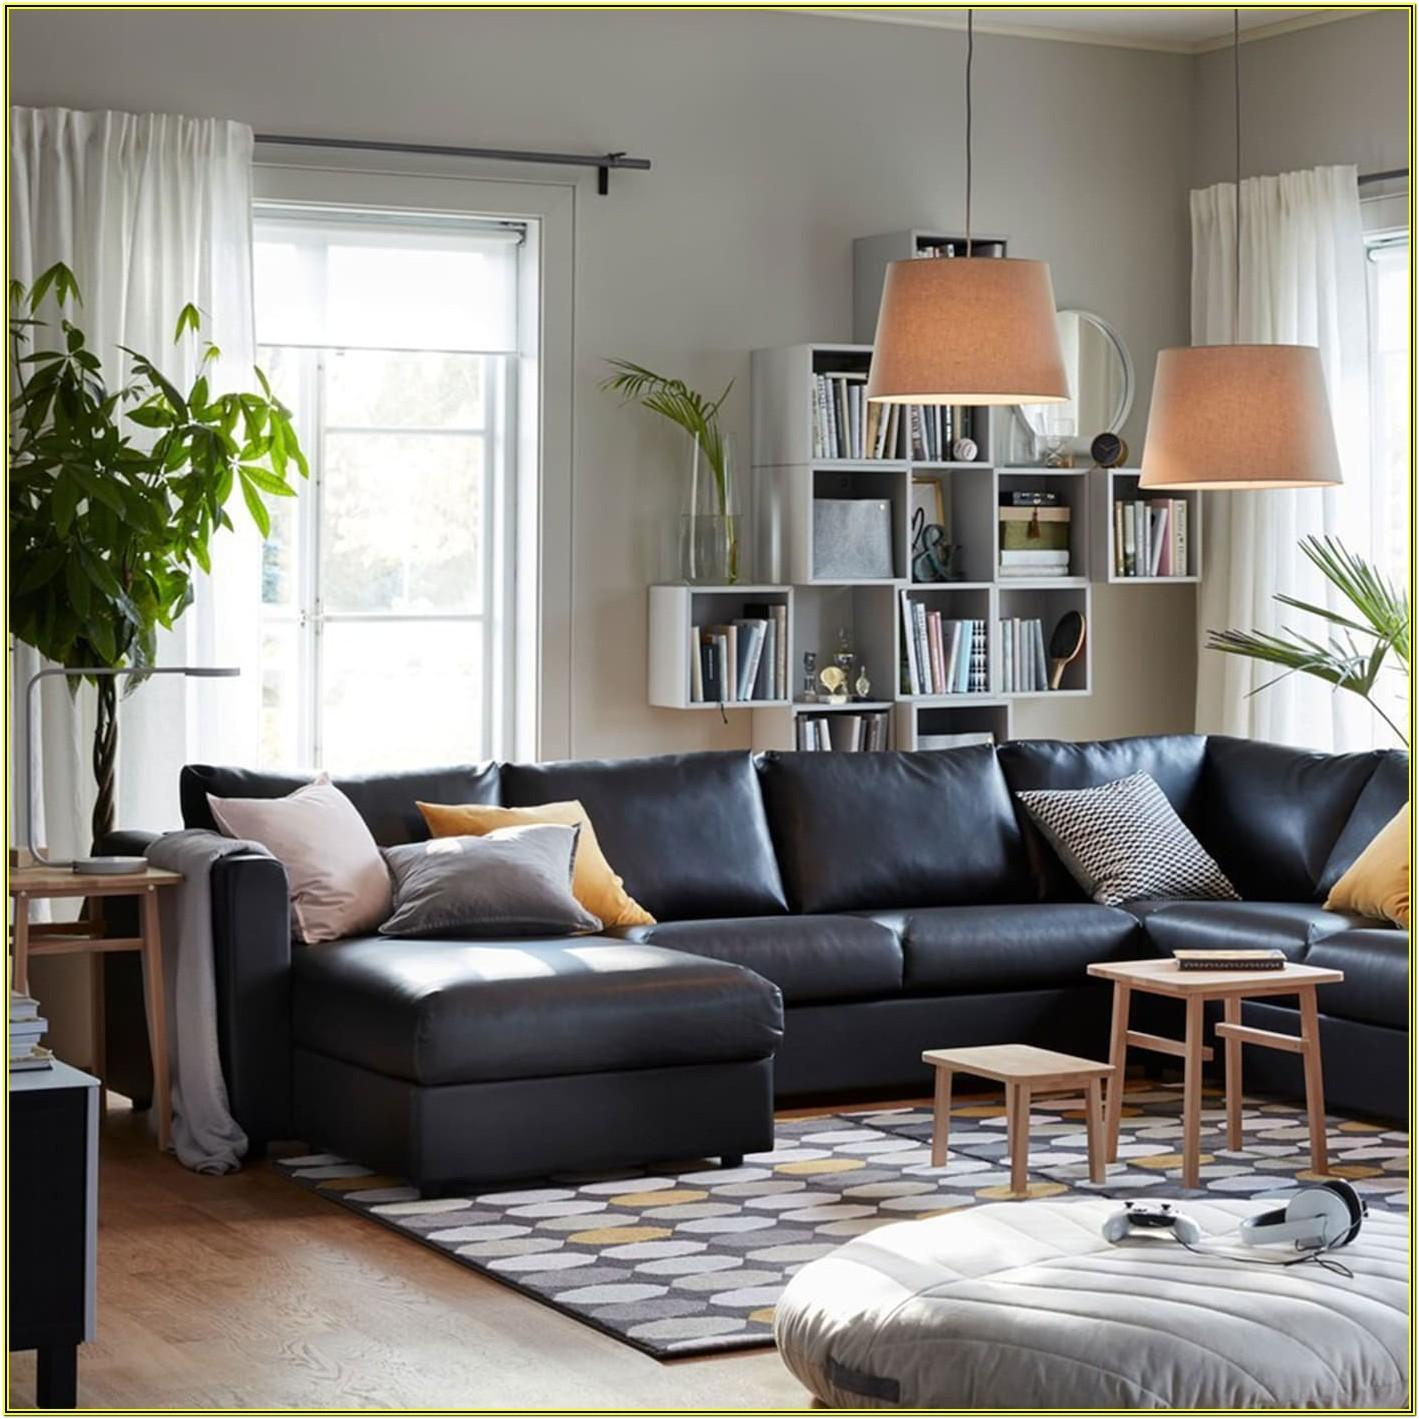 Living Room Layout Ideas With Chaise